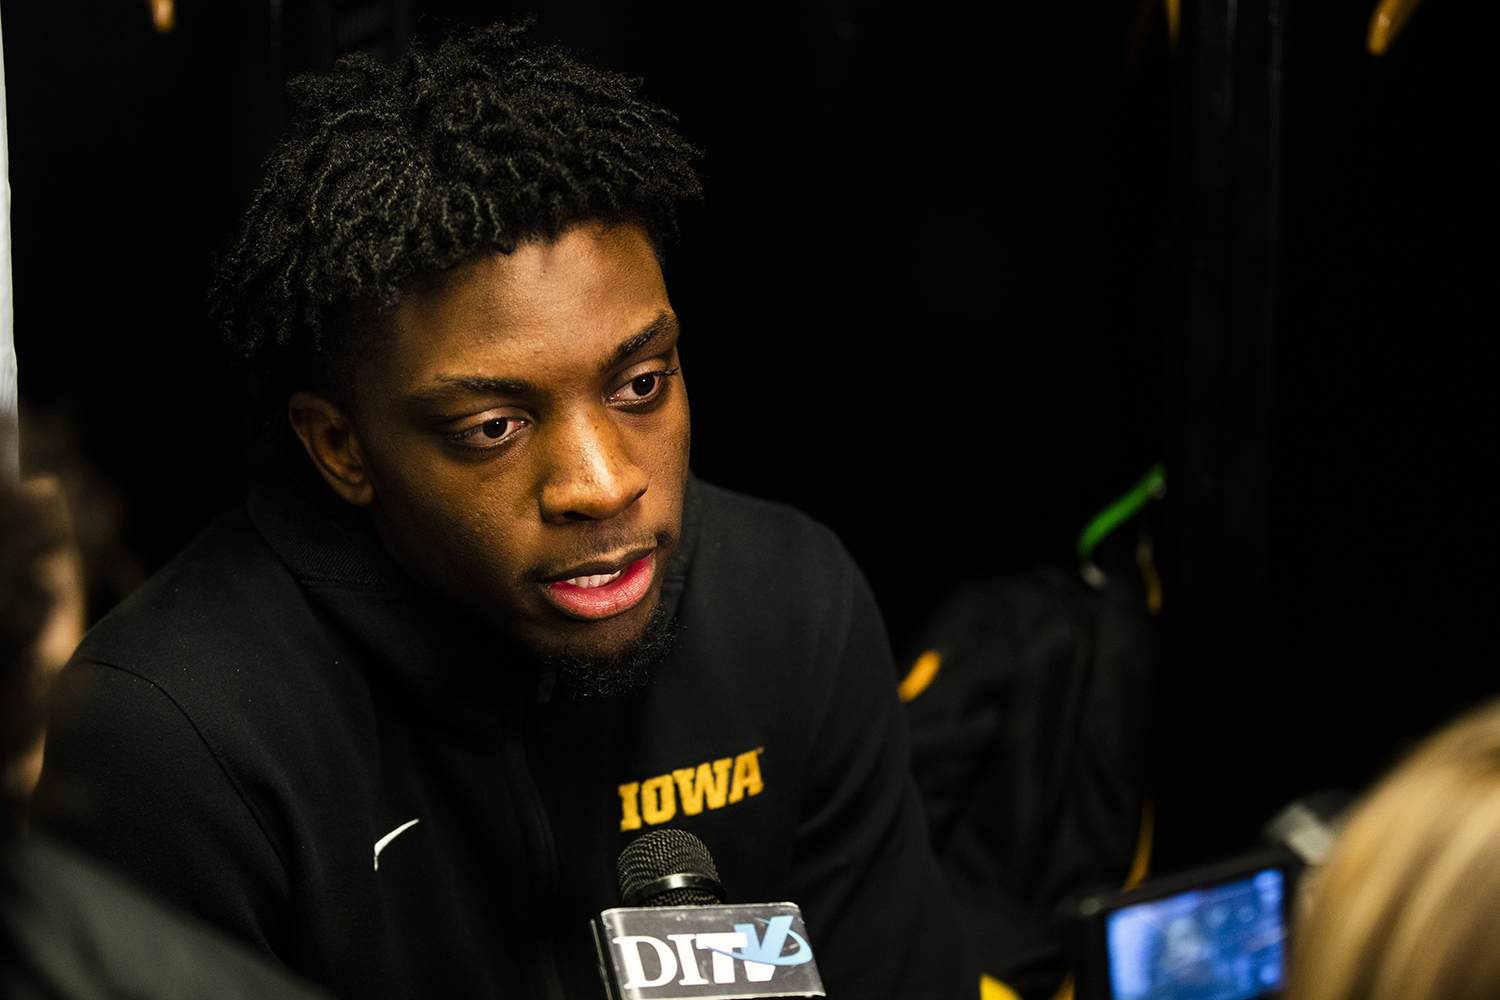 Iowa forward Tyler Cook answers questions during the Iowa press conference at Nationwide Arena in Columbus, Ohio on Thursday, March 21, 2019. The Hawkeyes will compete against the Cincinnati Bearcats tomorrow in the NCAA Tournament.